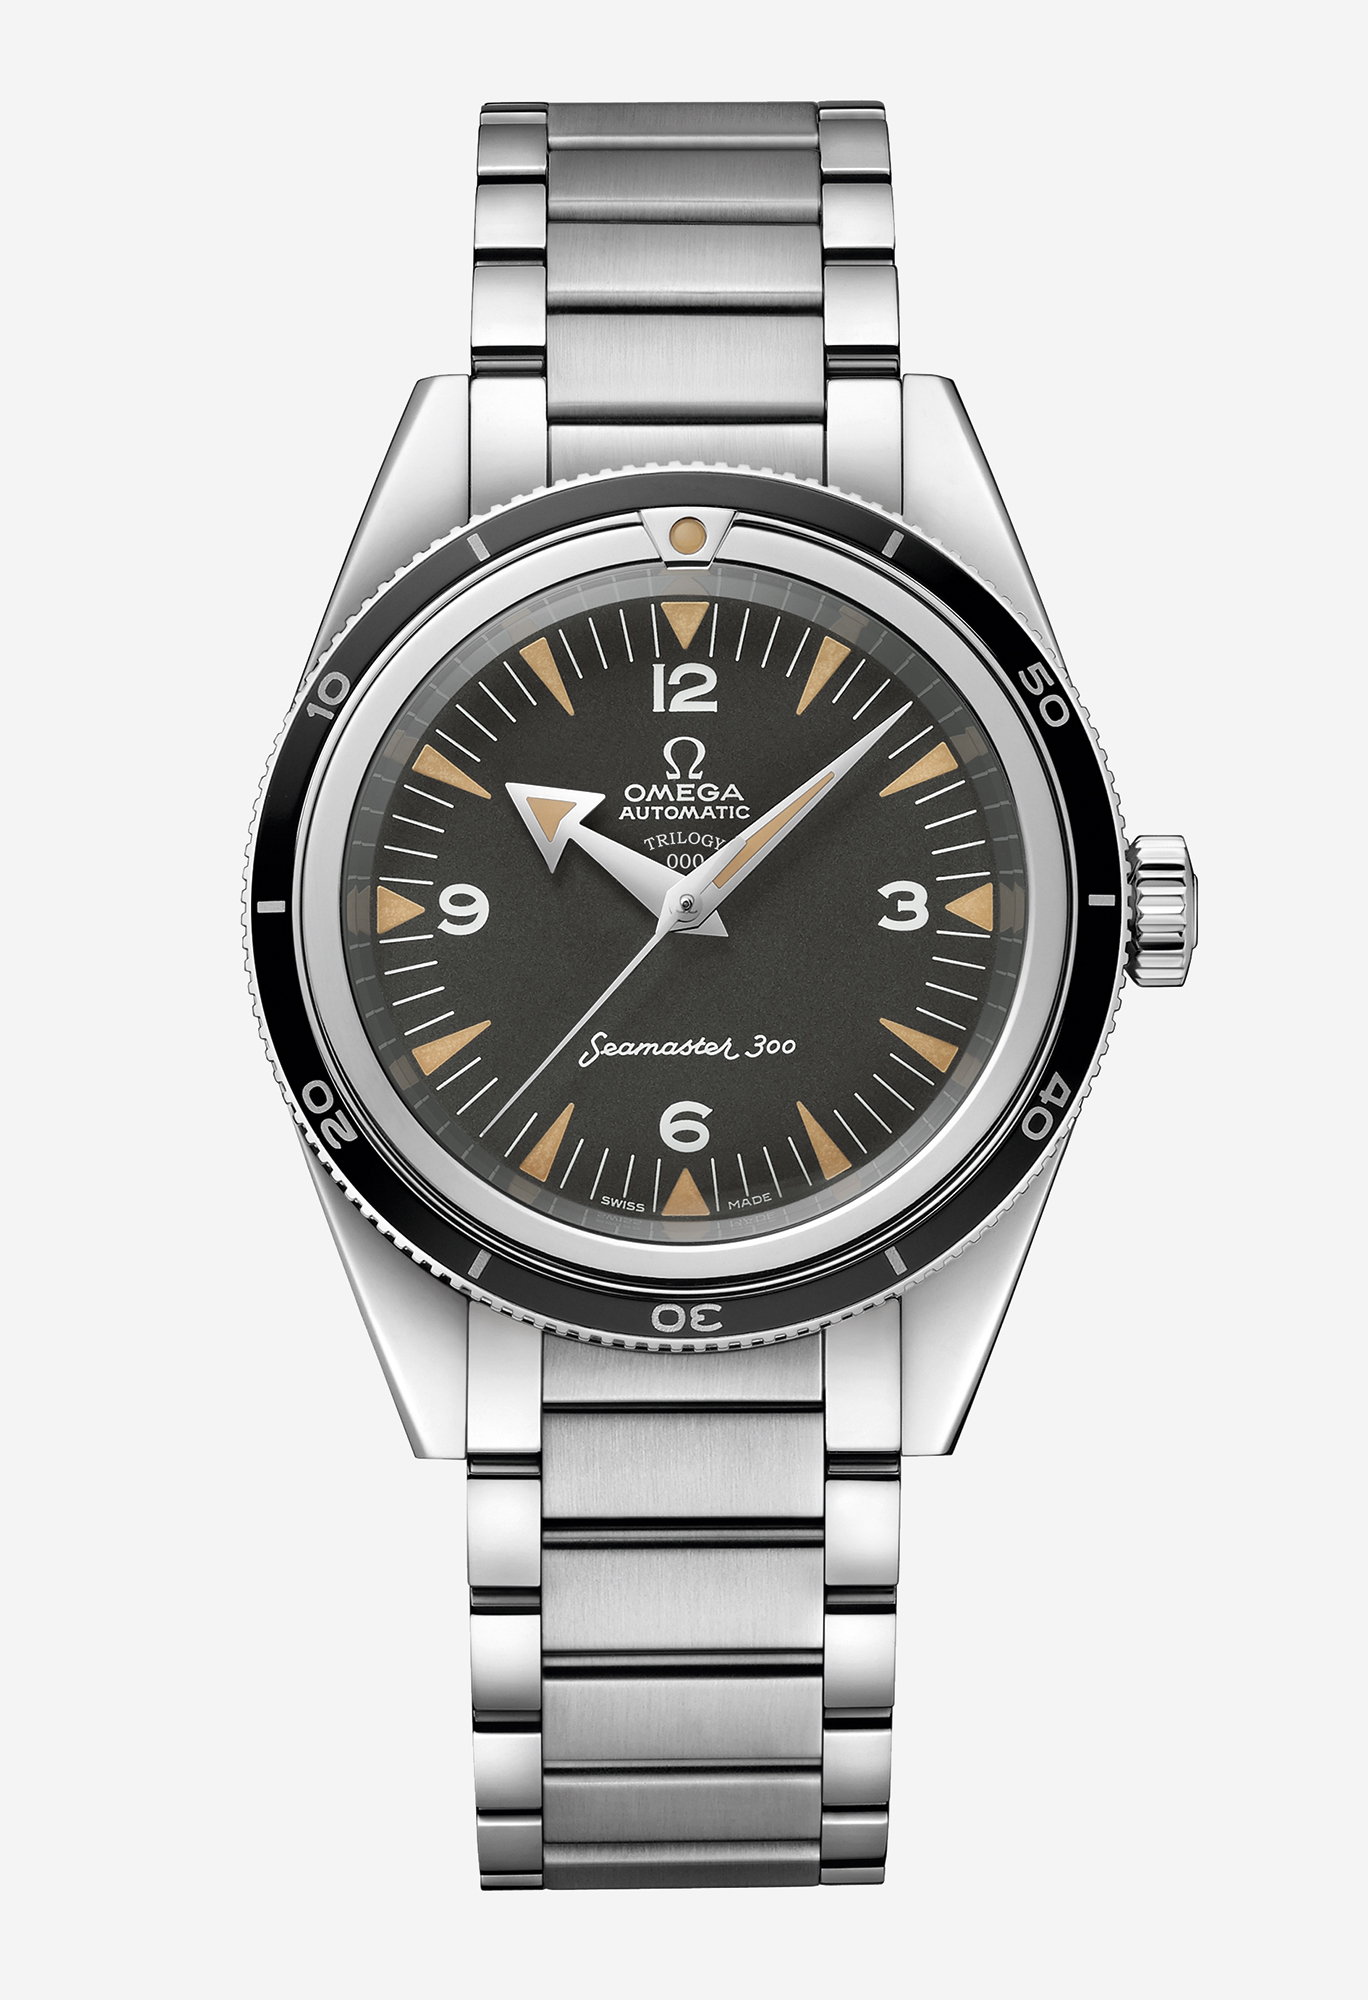 Omega: Launched in 1957, the original Seamaster 300 (above) marks turning 60 with an updated model using Omega's innovative technology. £5,200; omegawatches.com